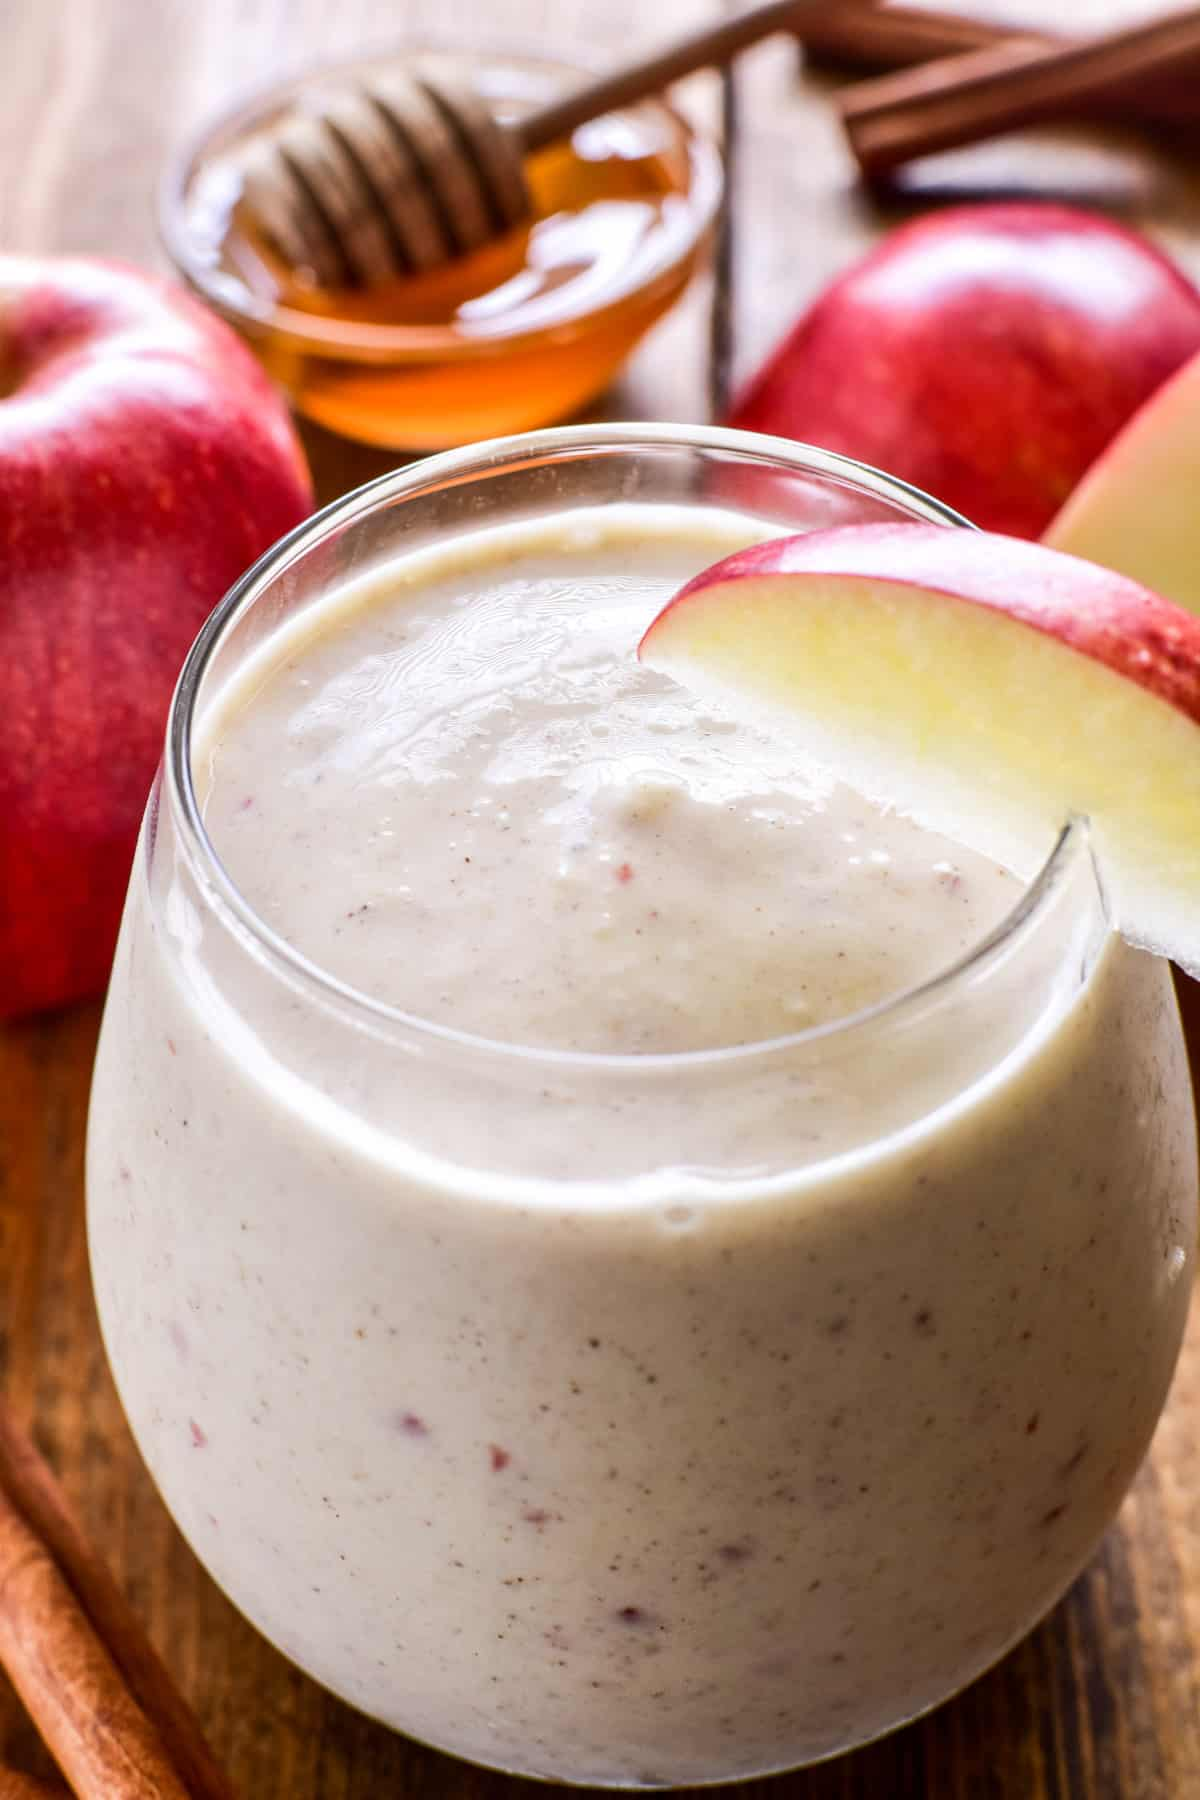 Close up of Apple Smoothie in a glass with fresh apples, cinnamon sticks, and honey